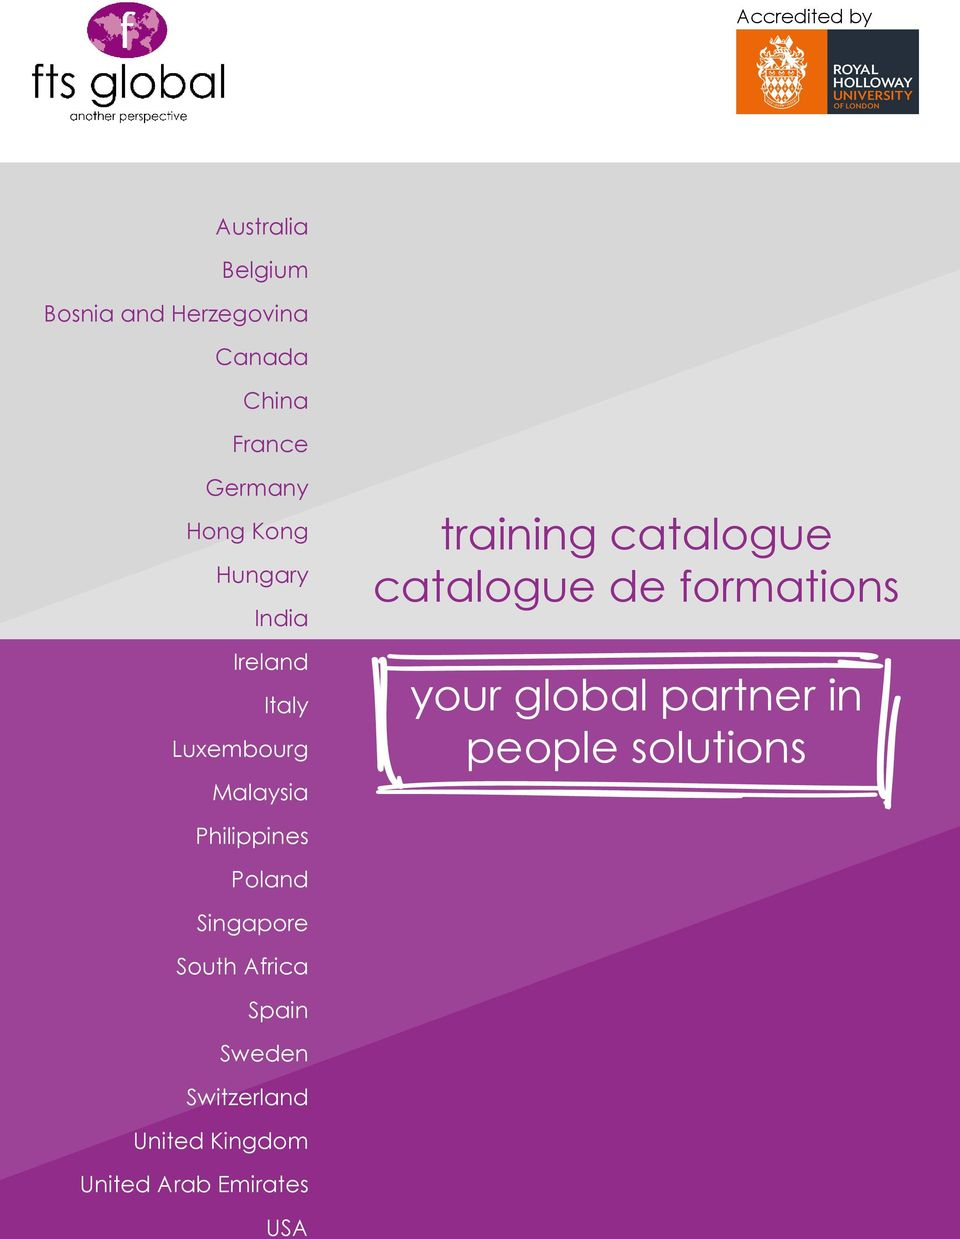 de formations your global partner in people solutions Philippines Poland